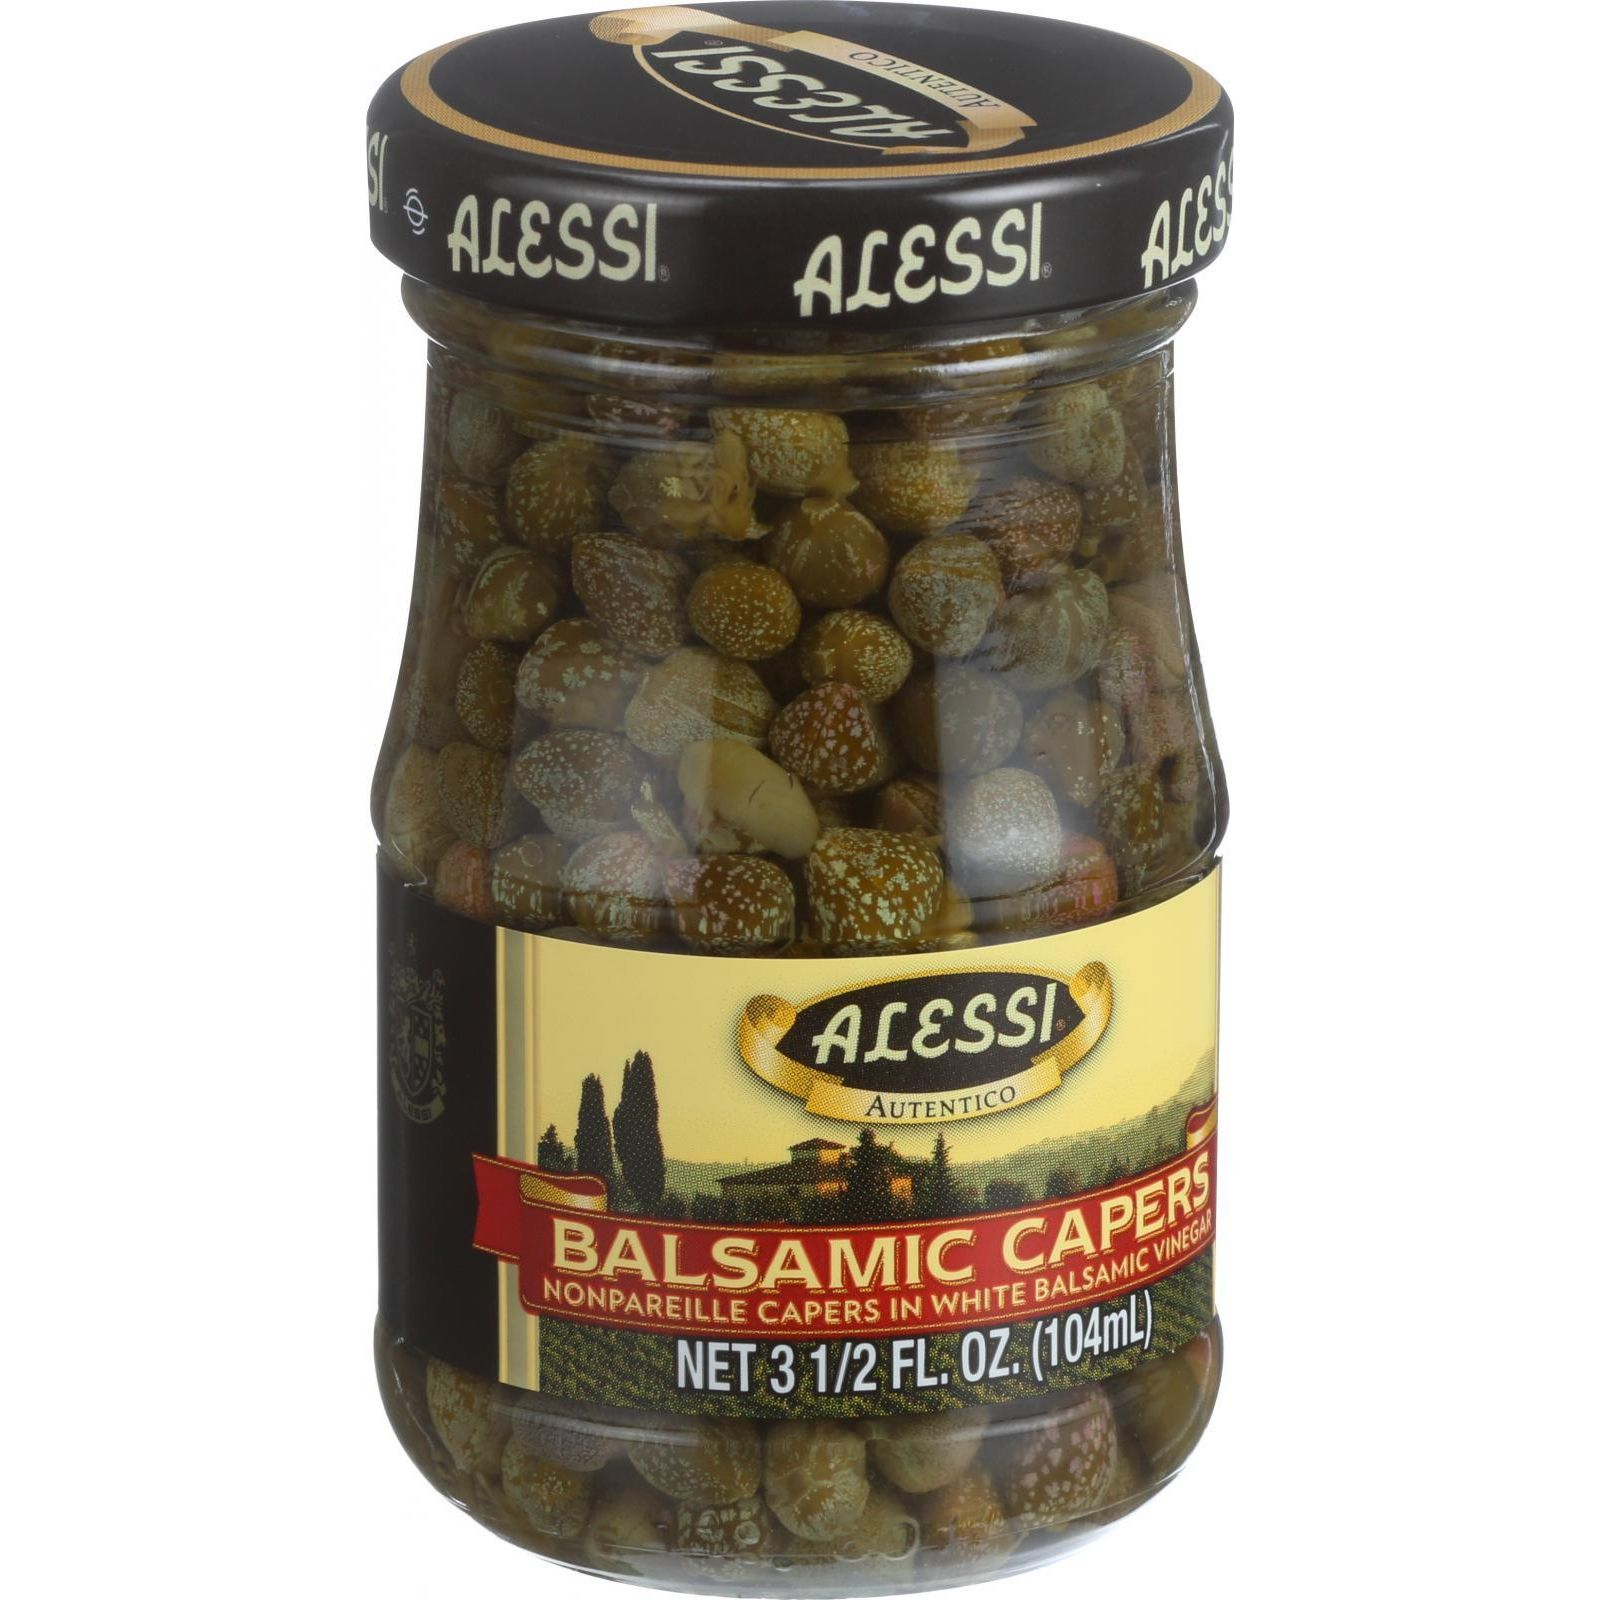 Alessi Capers in White Balsamic Vinegar 3.5 oz Case of 6 by